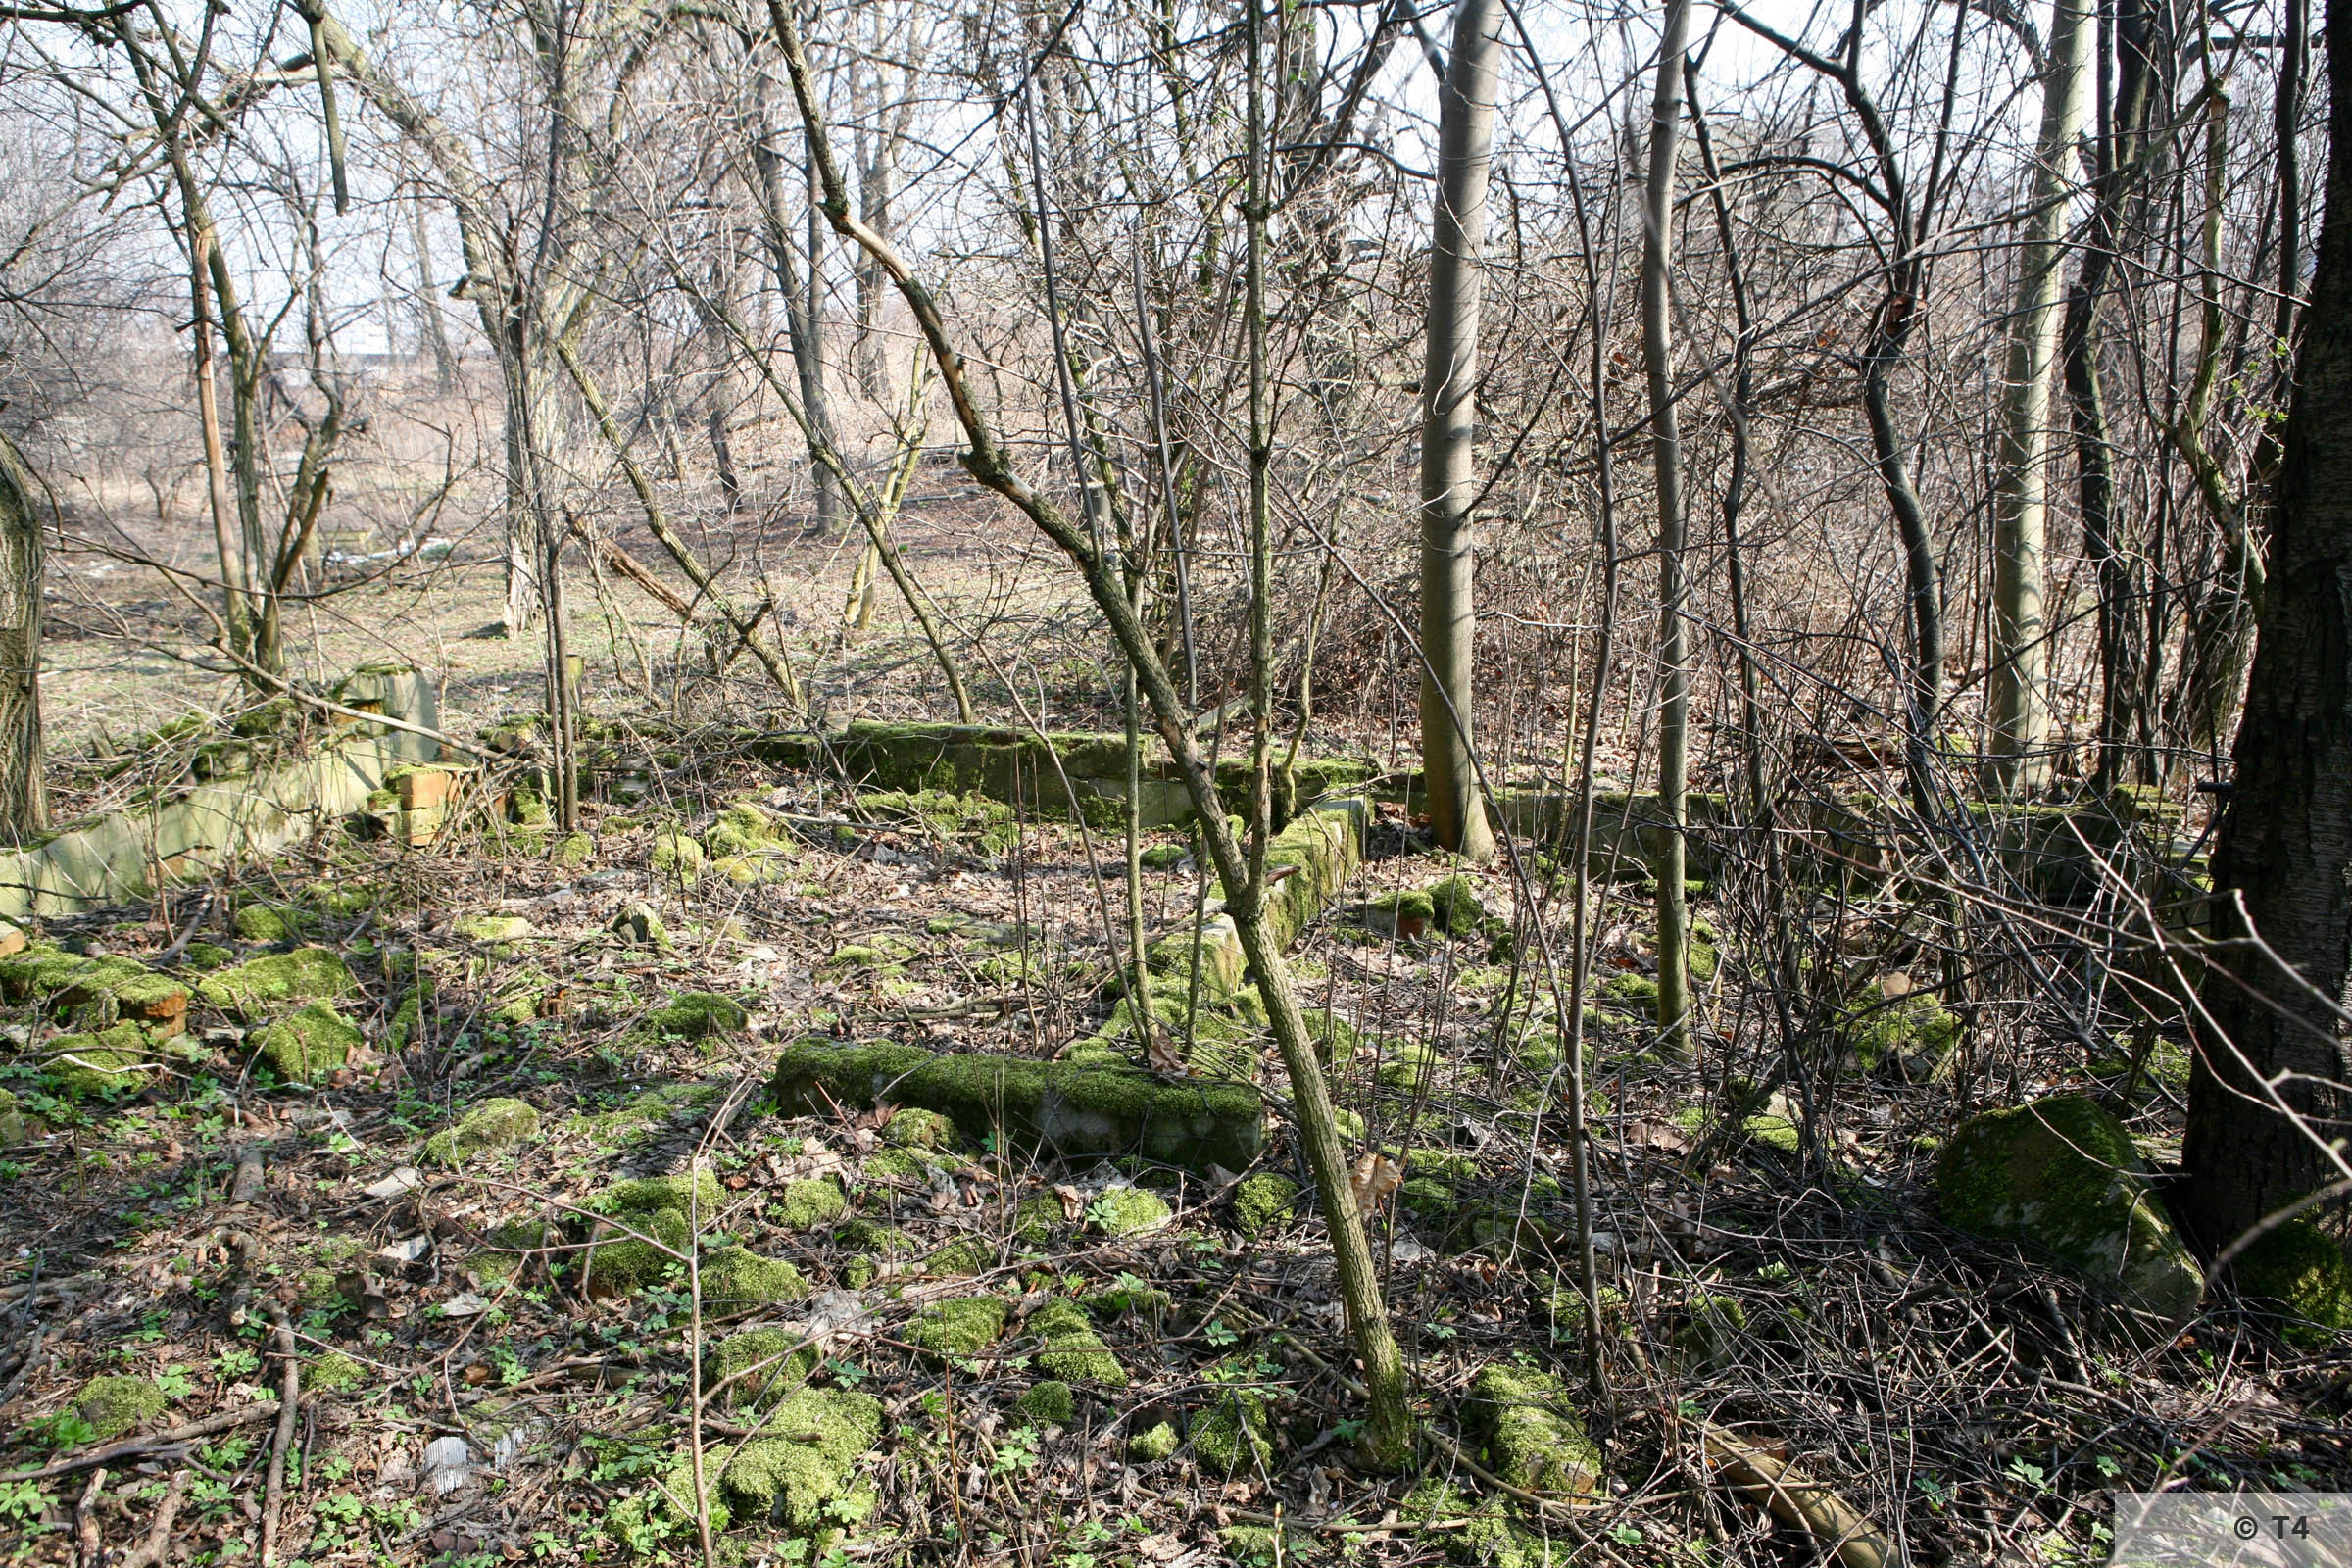 Foundations of barracks on the area of the former sub camp. 2007 T4 6756